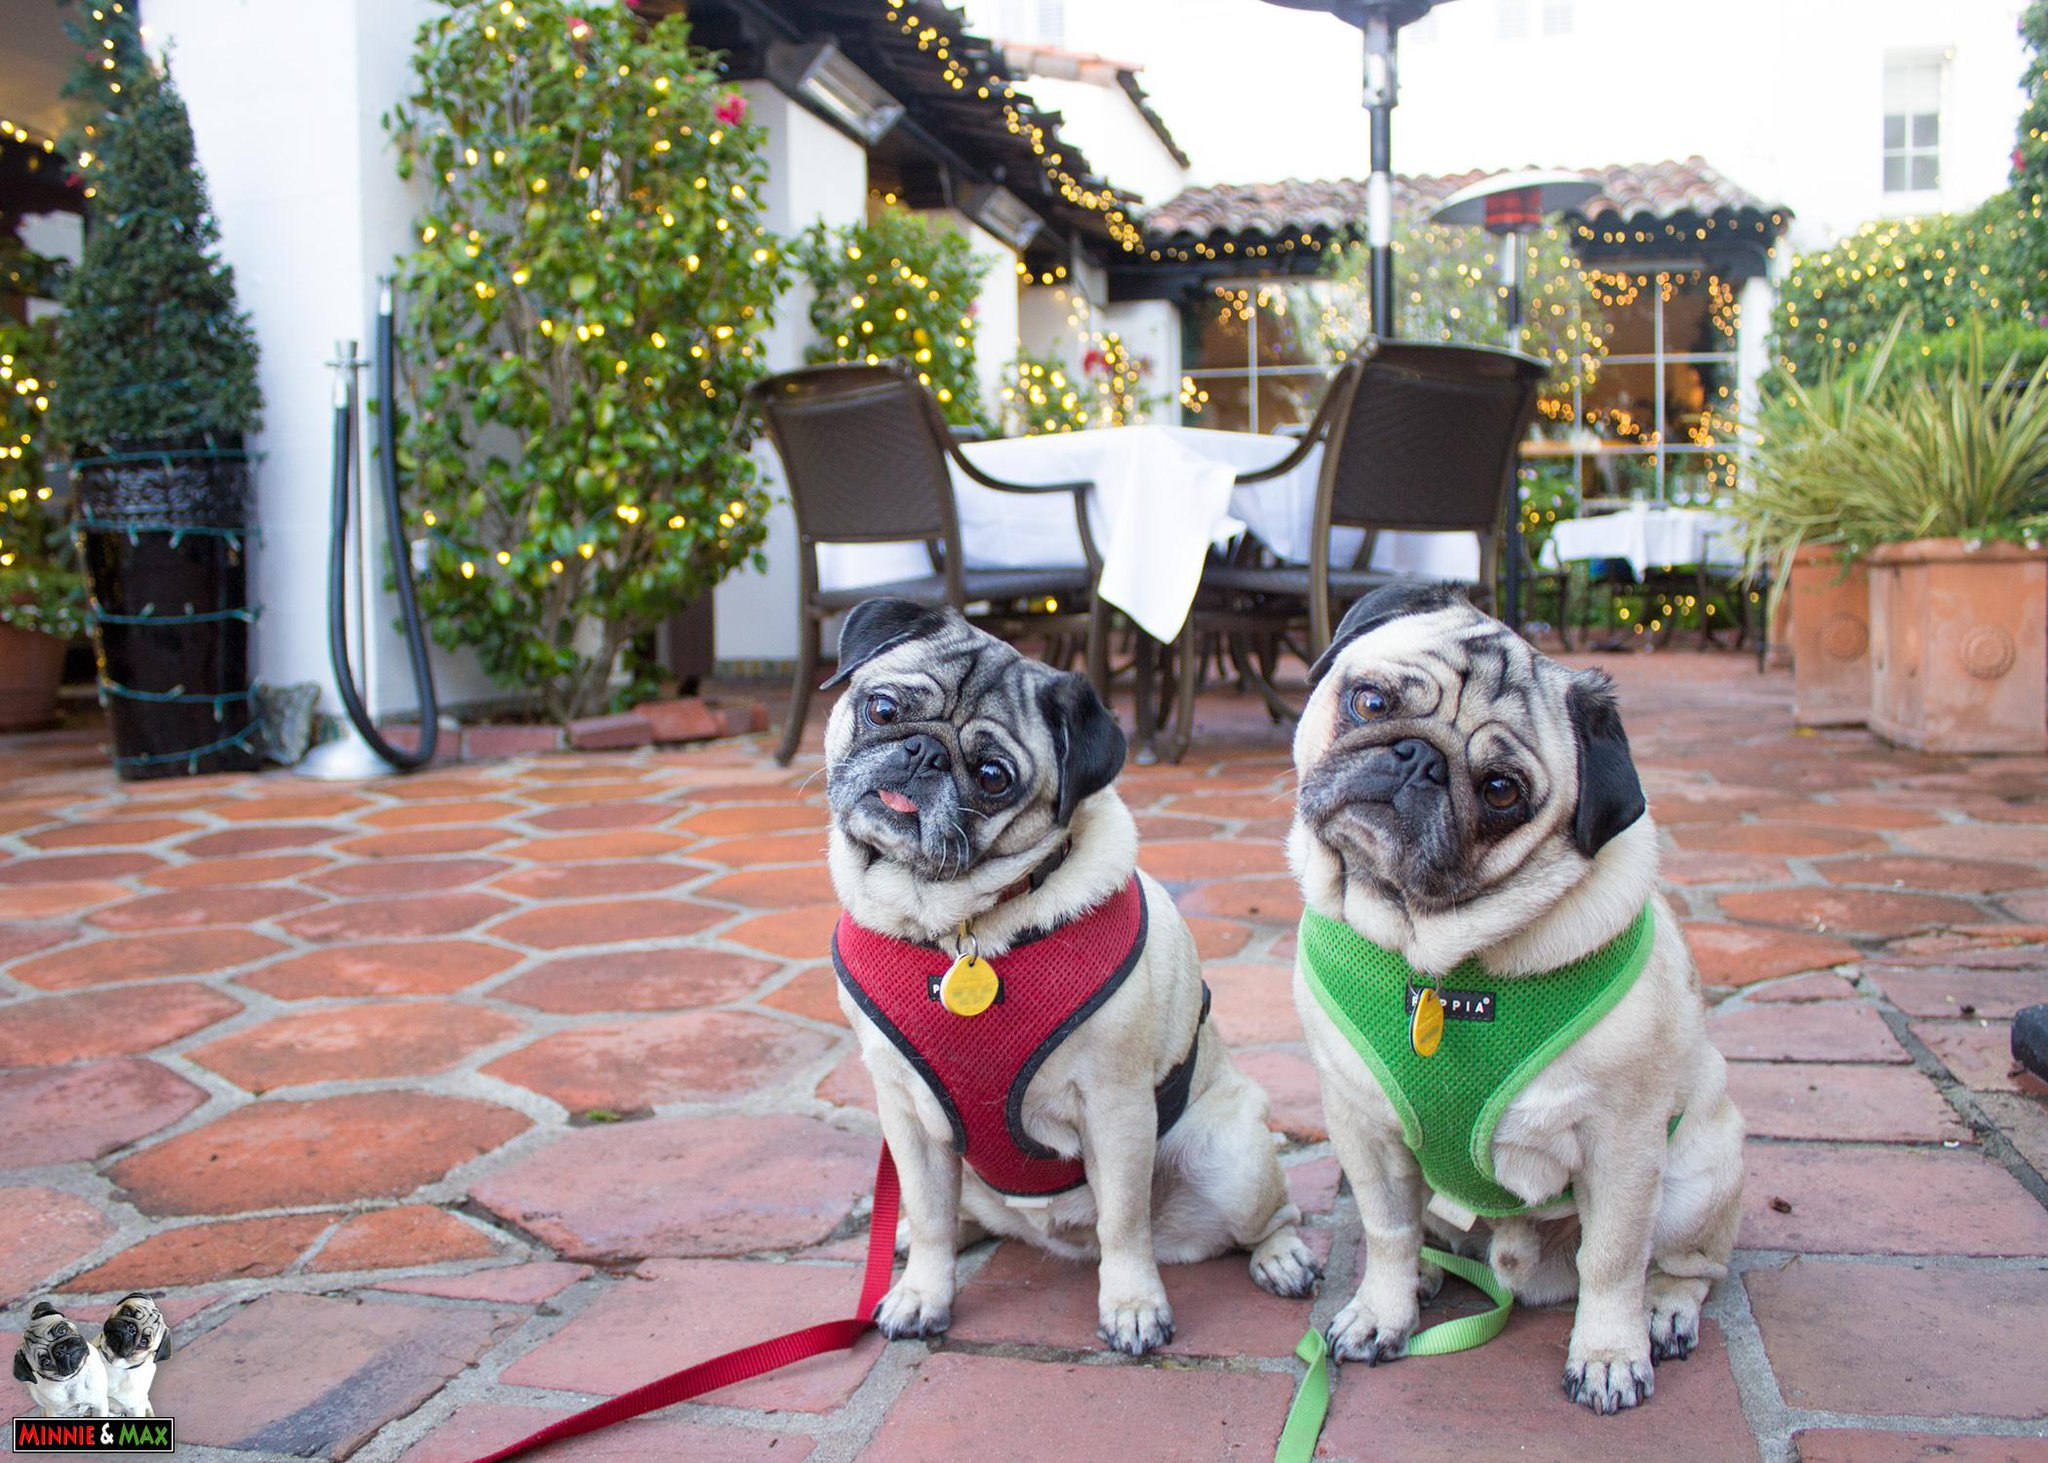 We love dog-friendly hotels and restaurants! @TheCypressInn @GoPetFriendly @Carmeldogfriend #pug http://t.co/Rn38f2zGLr